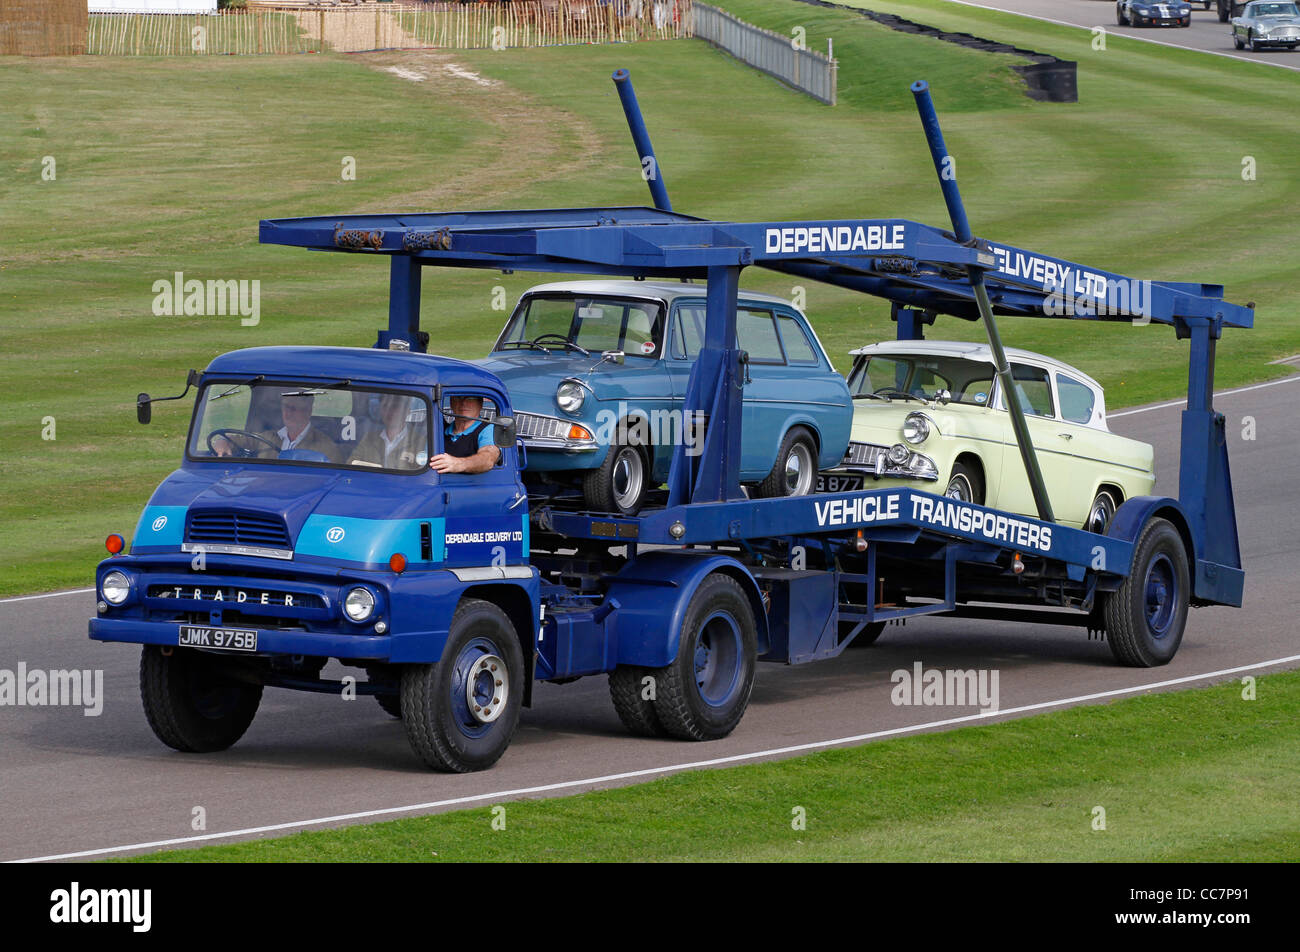 1964 Ford Thames Trader transporter with Ford Anglia's. 2011 Goodwood Revival, Sussex, UK. - Stock Image